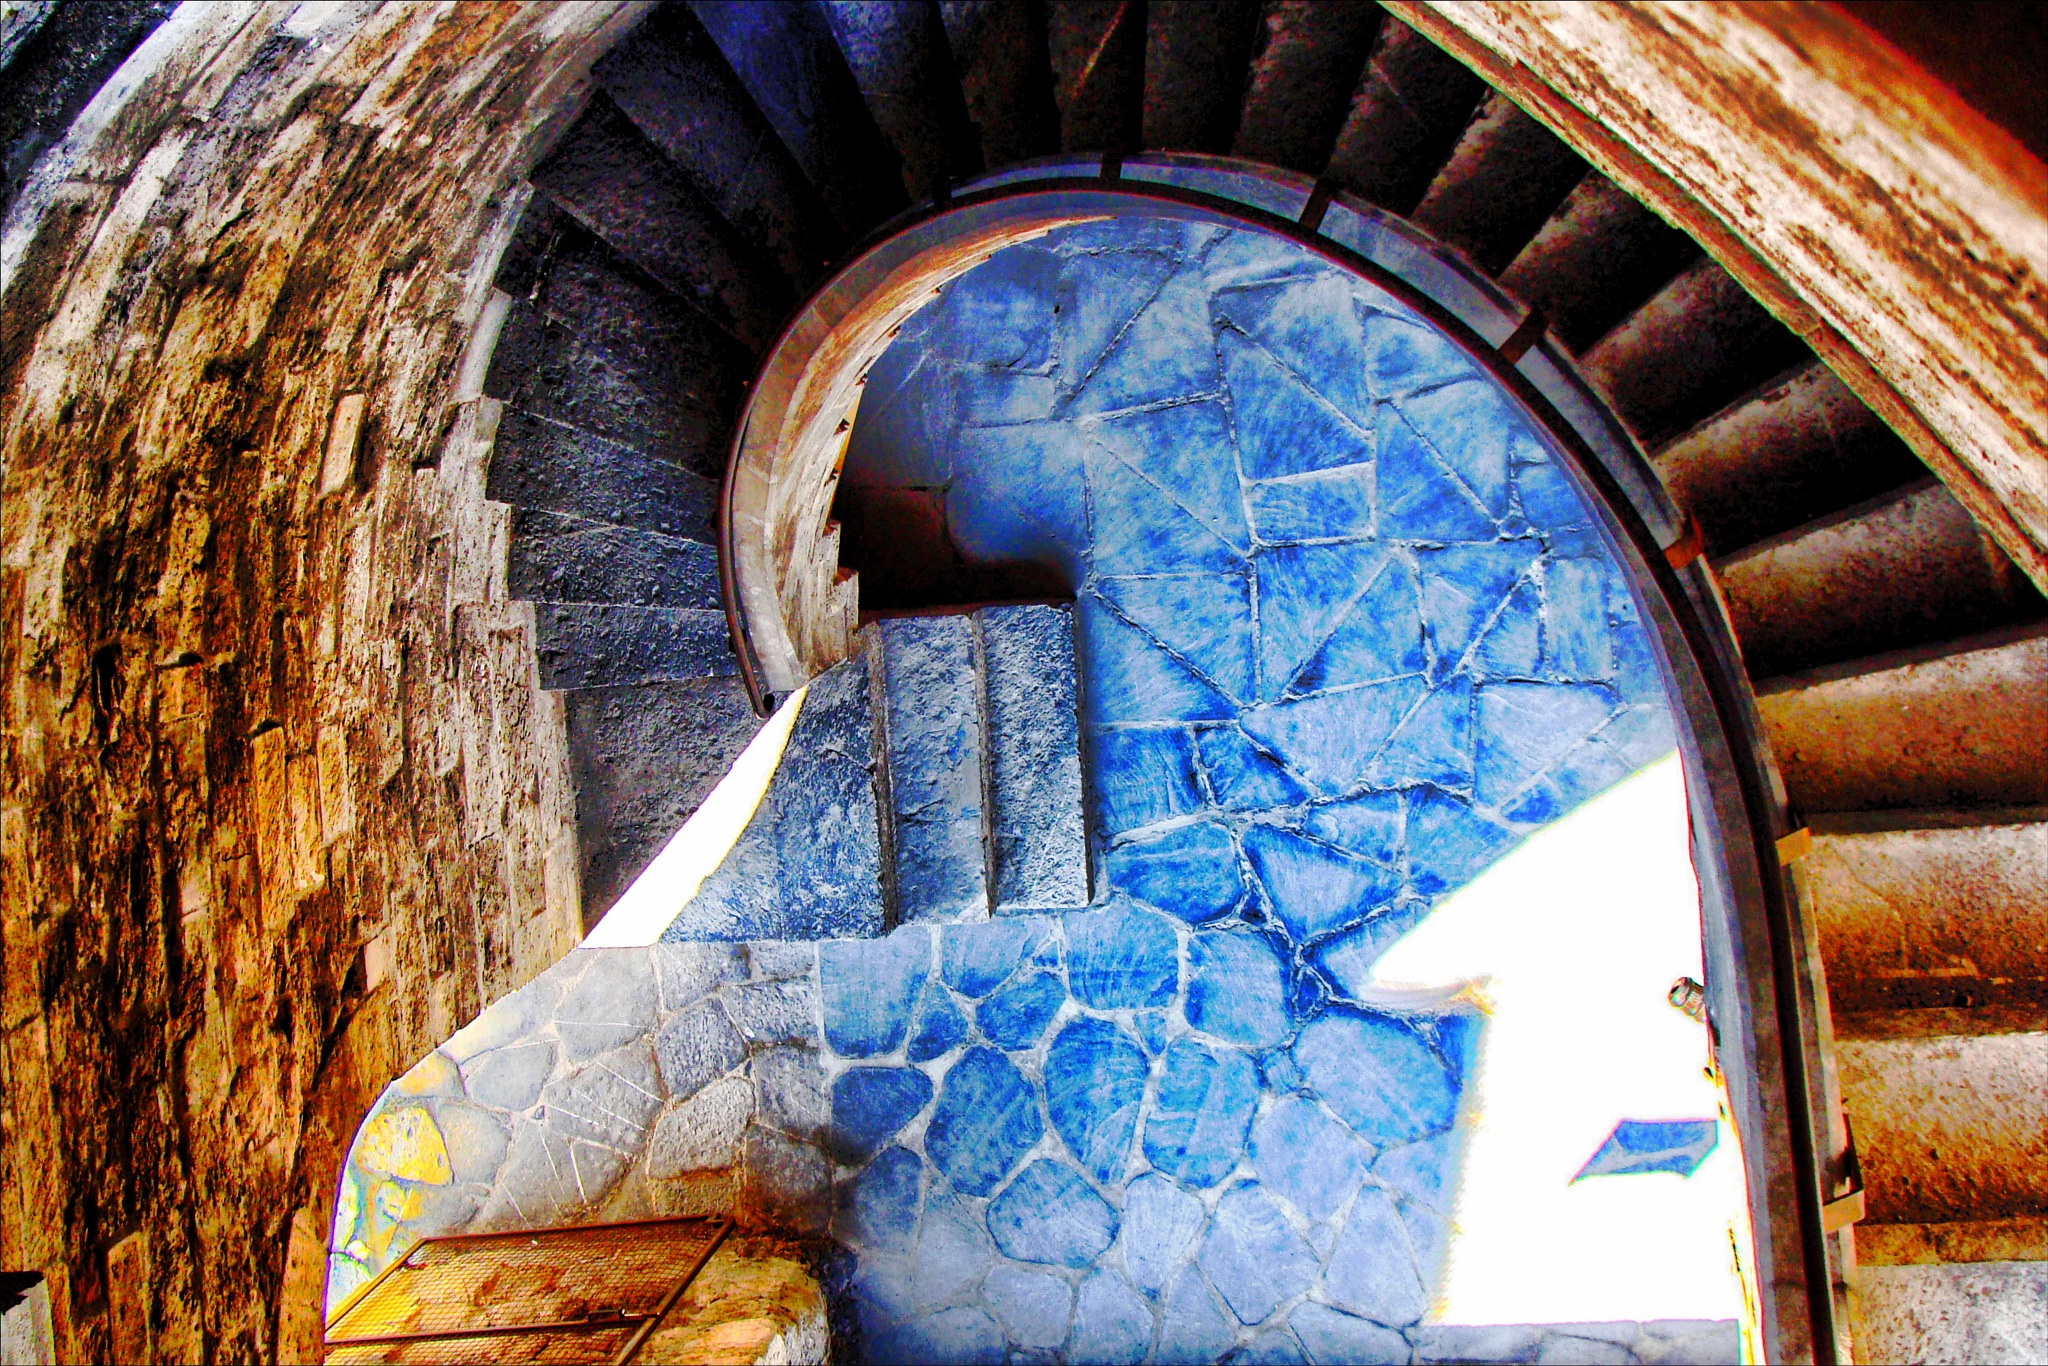 Staircase of the Porta Soprana tower by Fred Matos